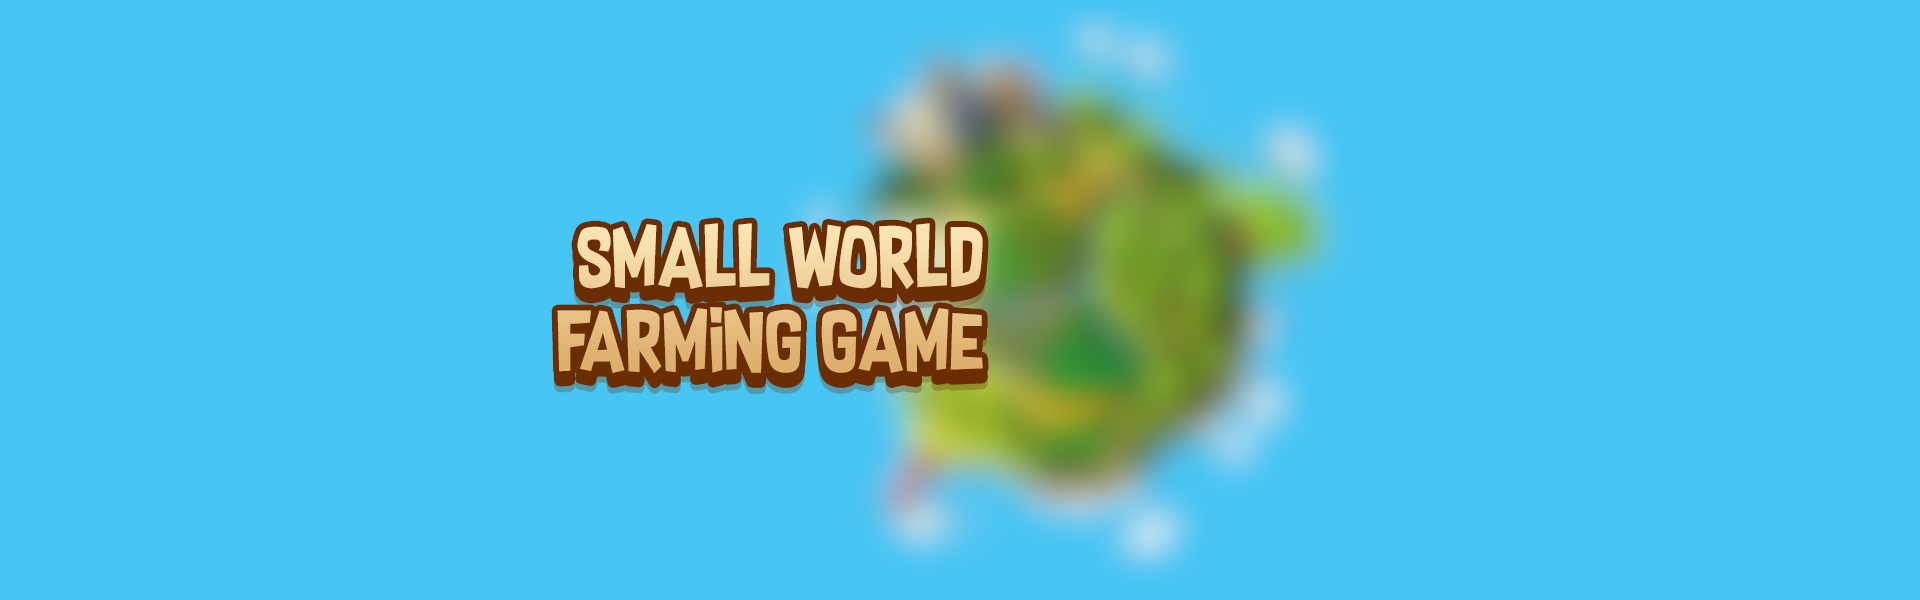 Small World Farming Game